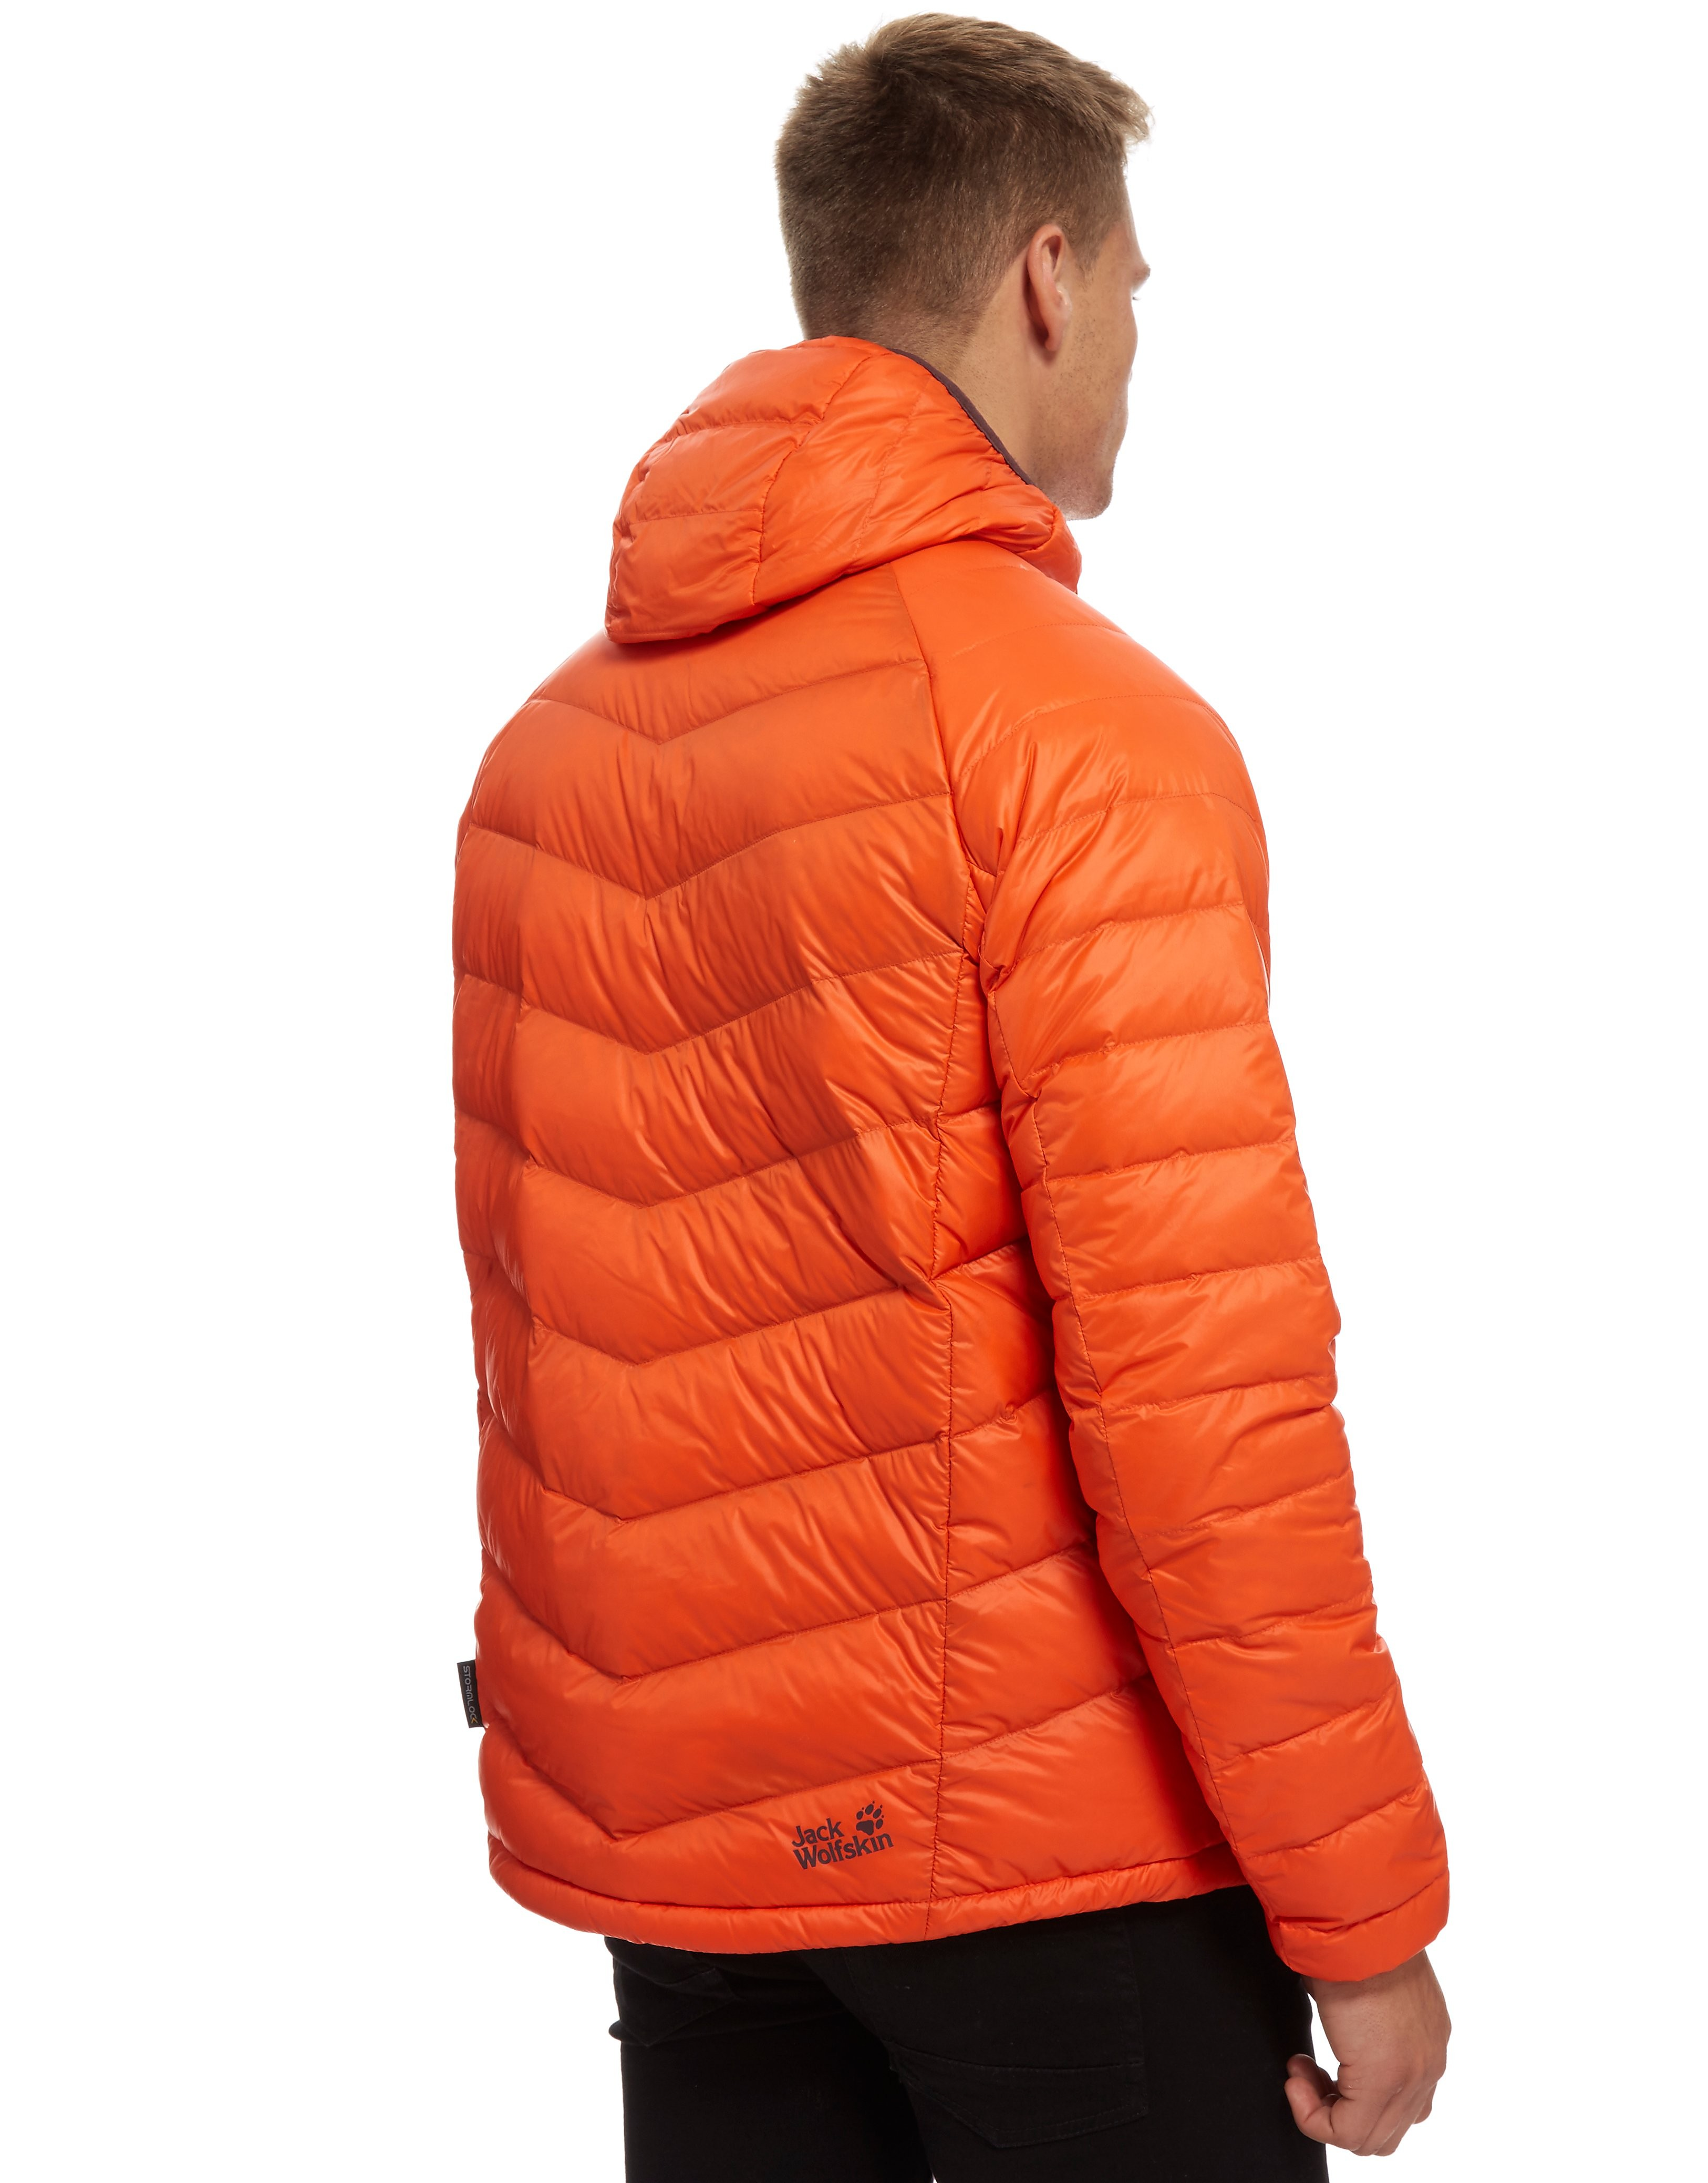 Jack Wolfskin Neon Bubble Jacket